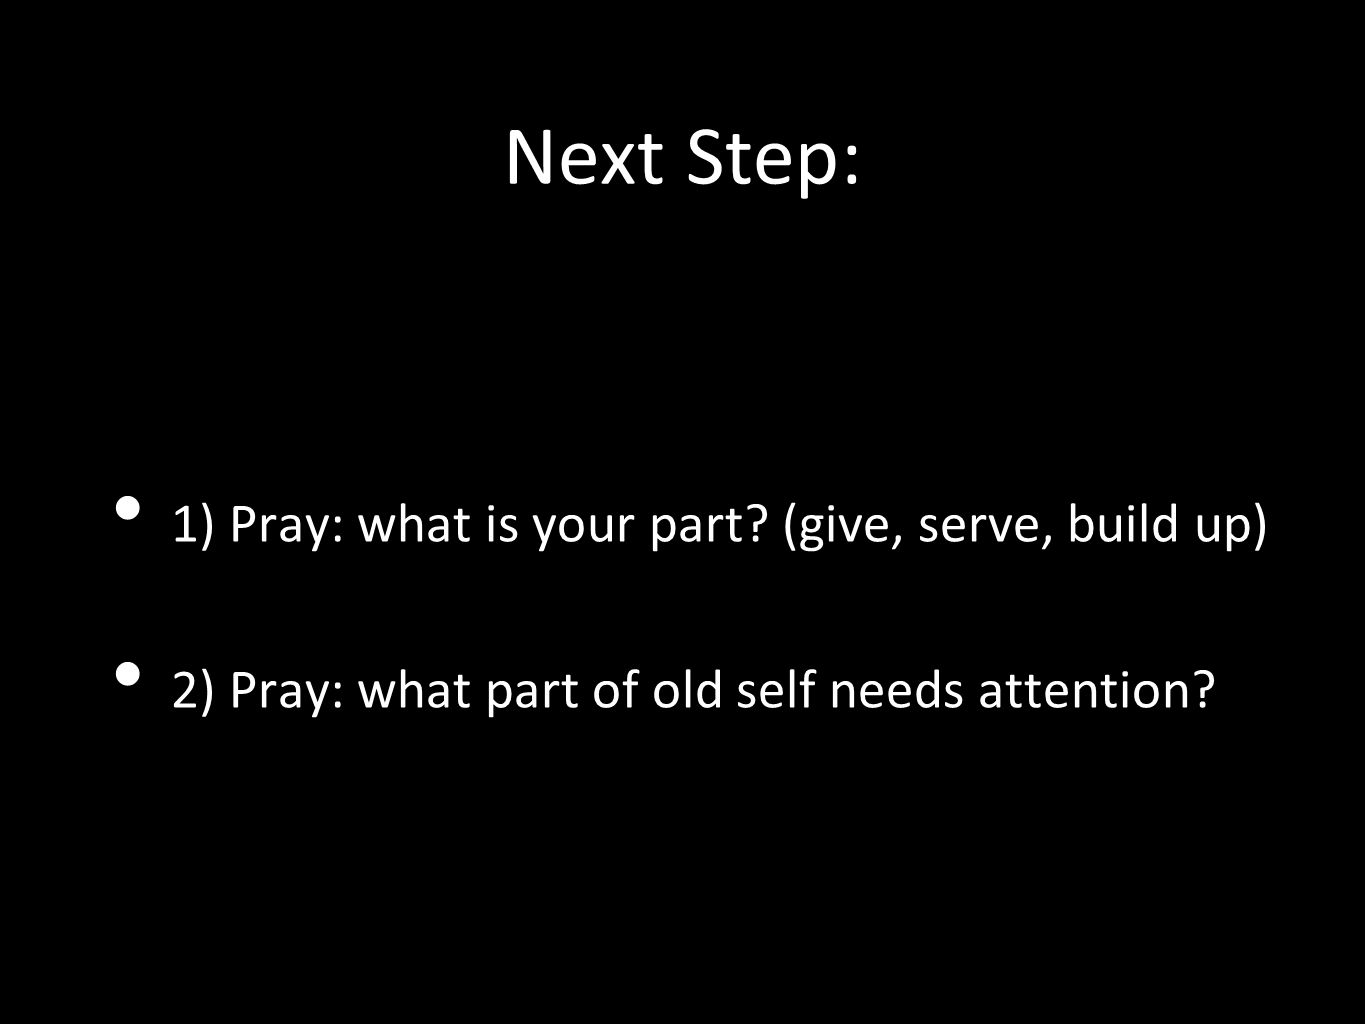 Next Step: 1) Pray: what is your part? (give, serve, build up) 2) Pray: what part of old self needs attention?